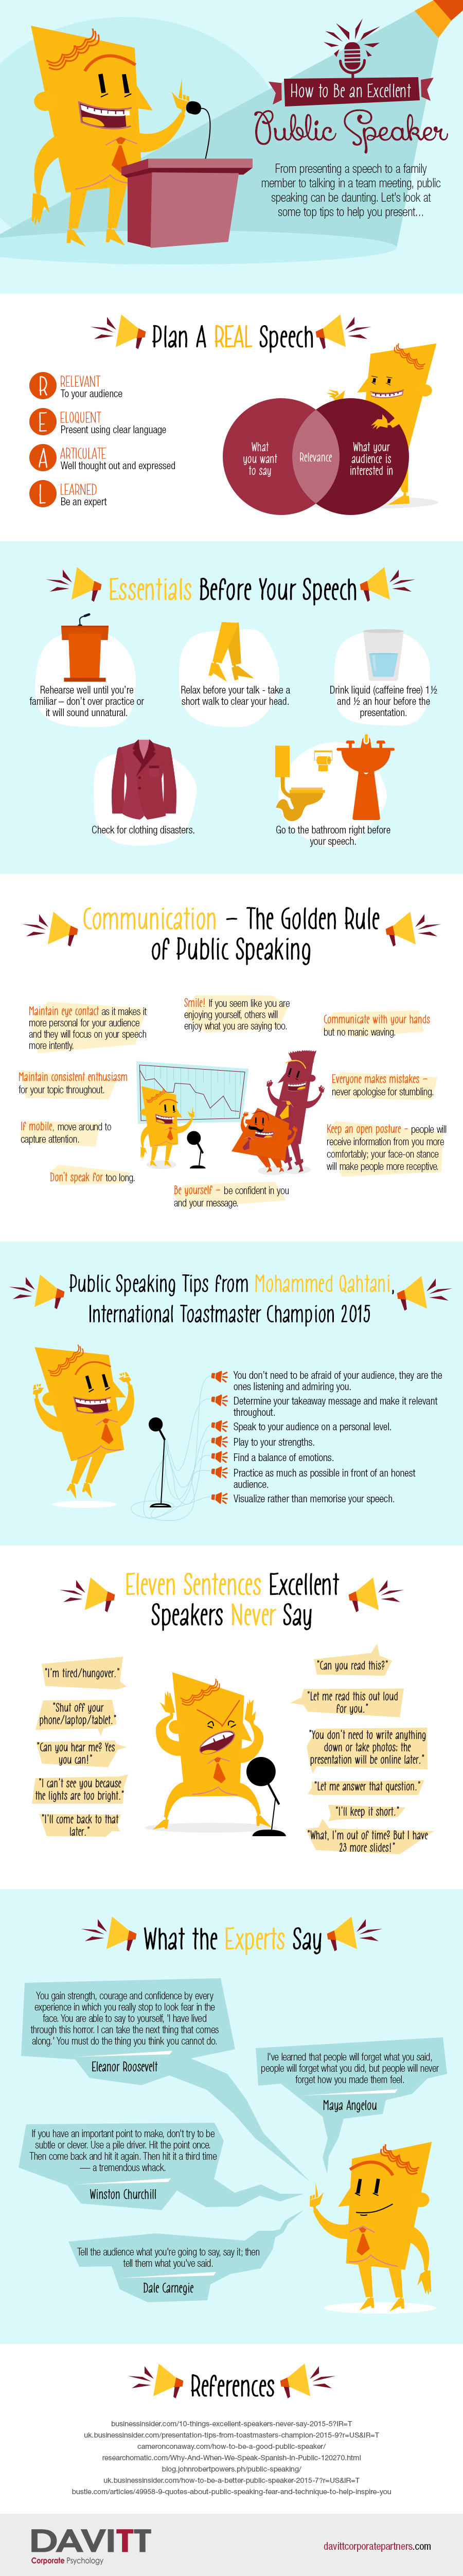 how-to-be-an-excellent-public-speaker-infographic